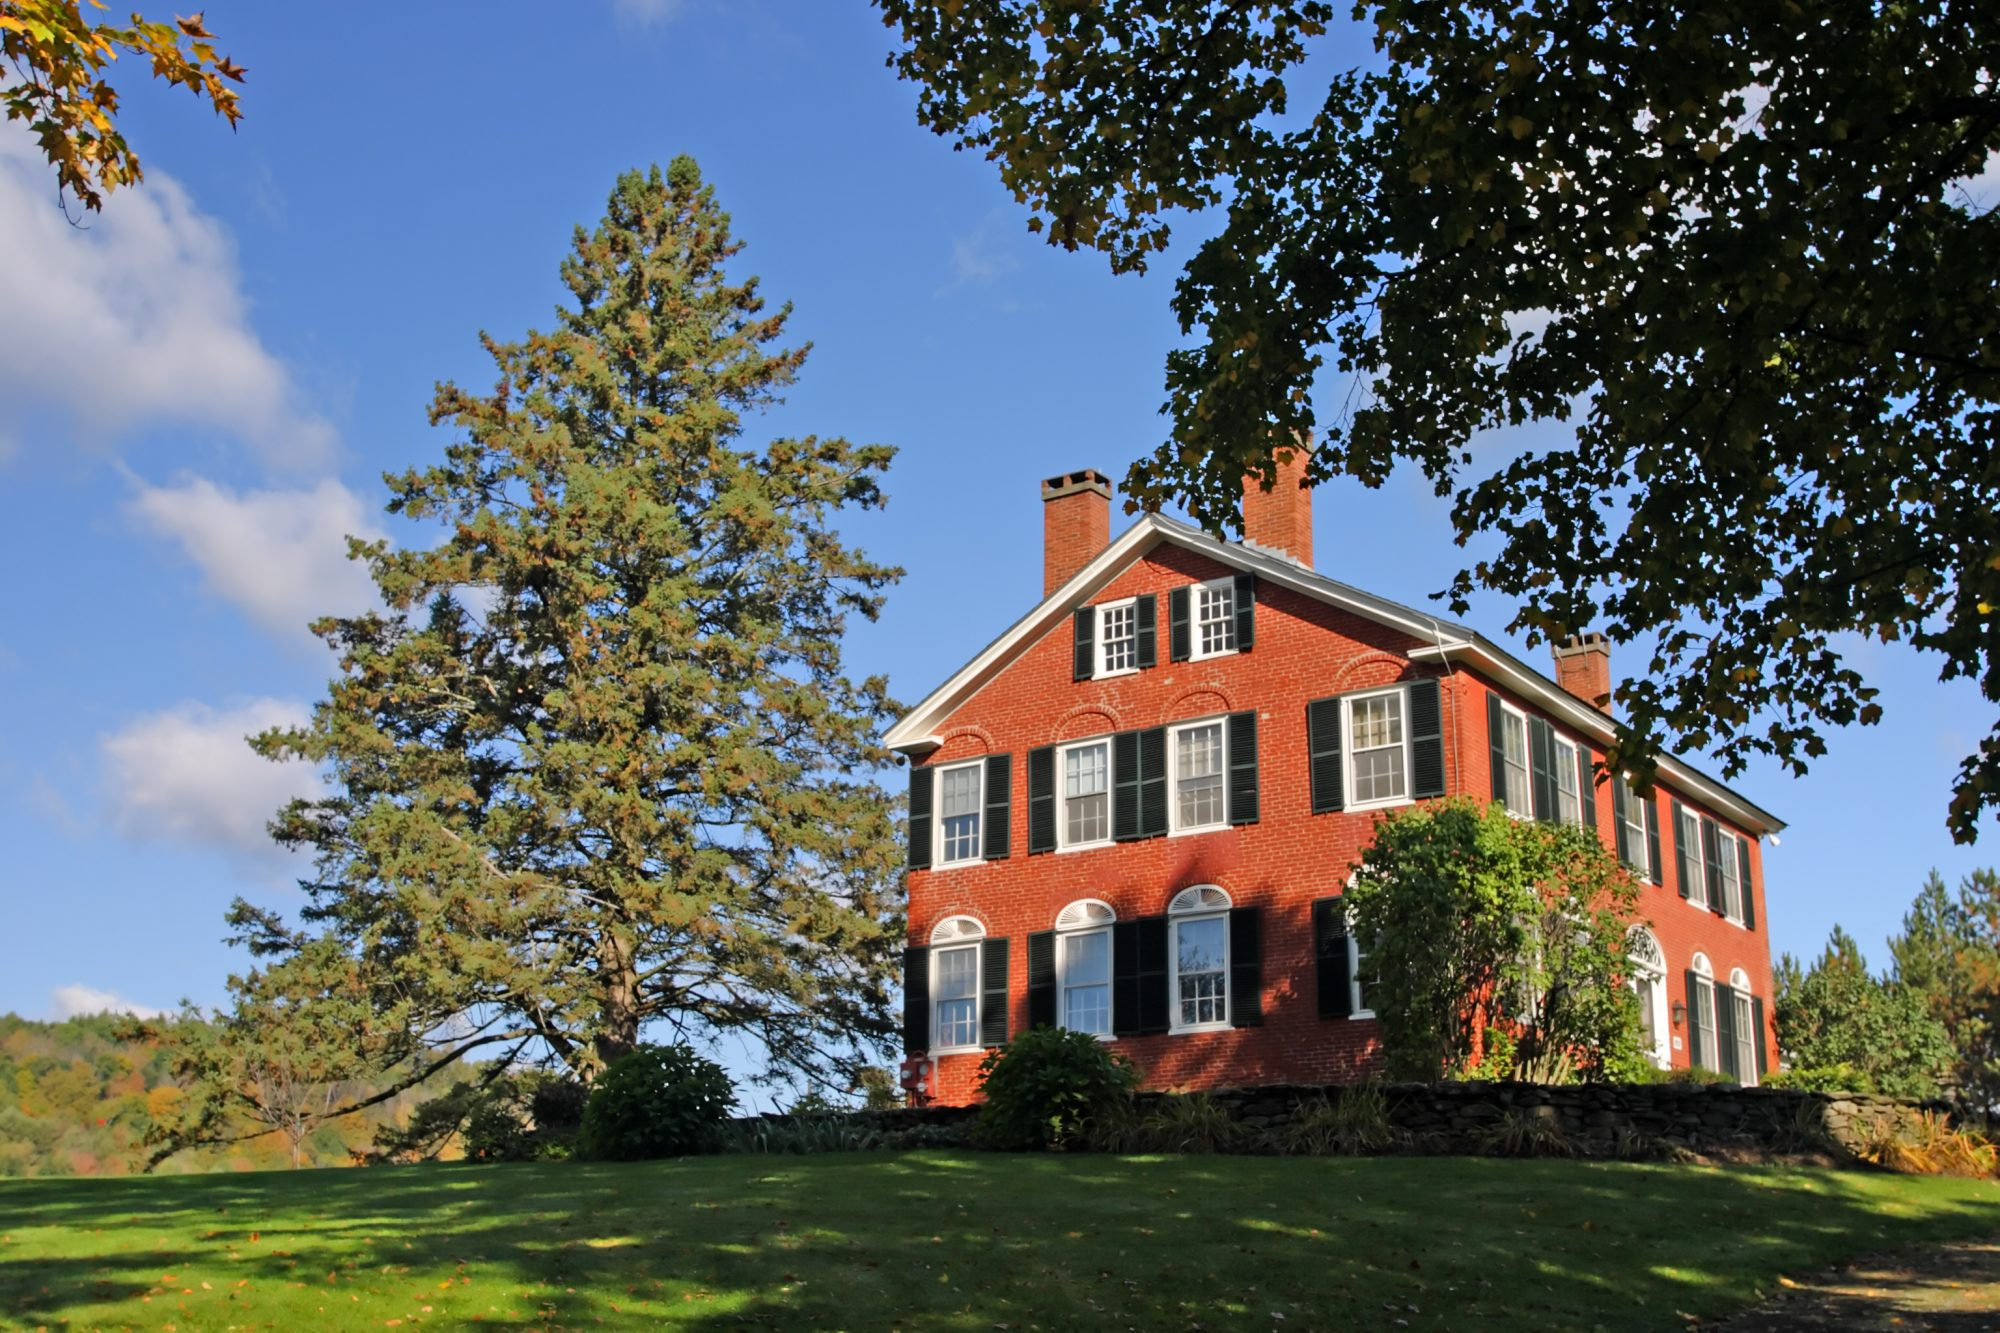 A brick home on a hillside in Vermont with black shutters and large trees surrounding.